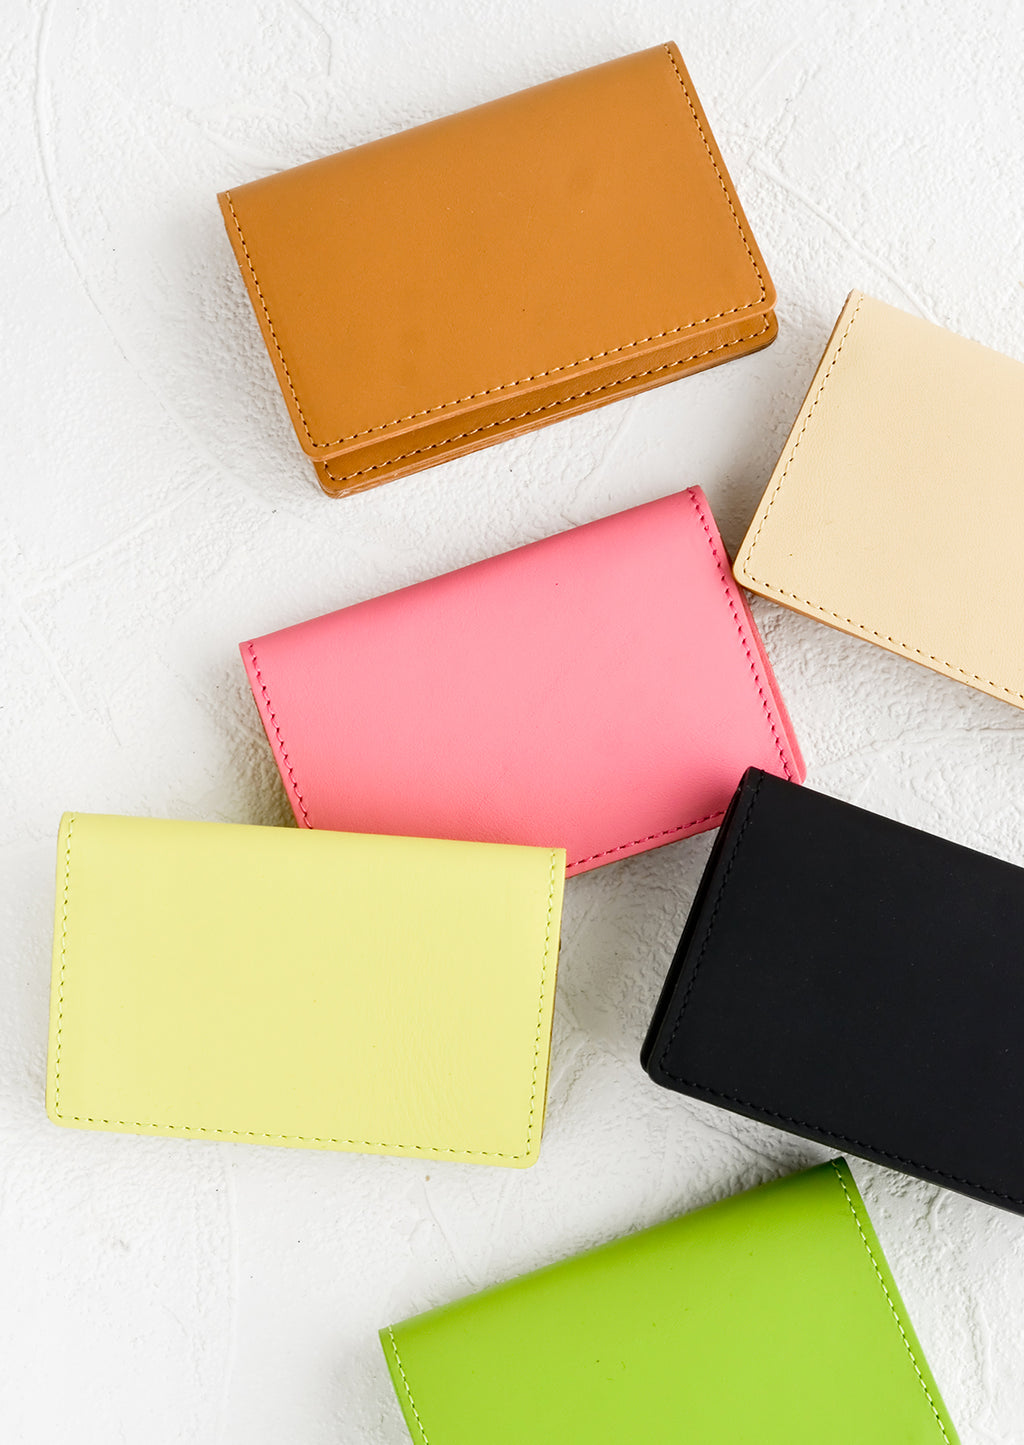 2: Leather card holder wallets in assorted colors.